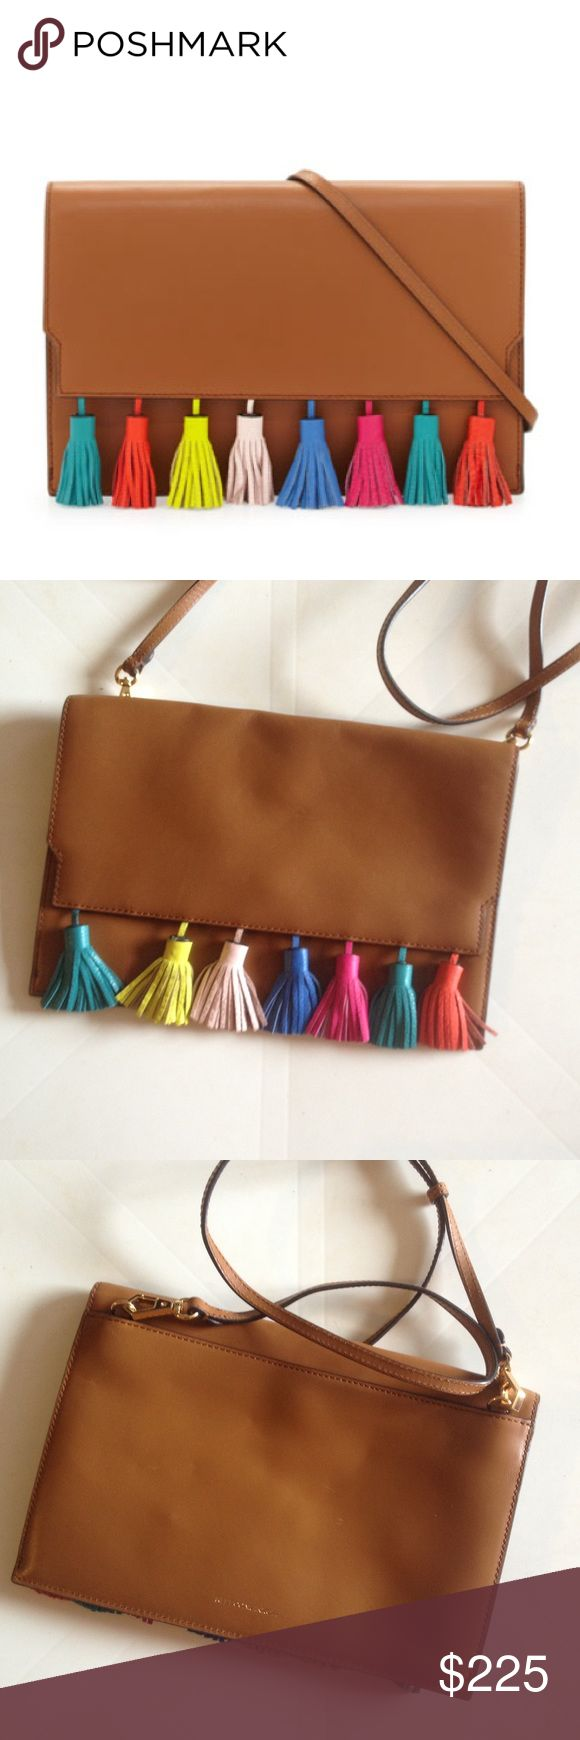 Rebecca Minkoff Sofia Clutch Bag Crossbody Super cute crossbody bag! Sadly missing one tassel  Otherwise, in excellent shape. Measures about 11.5 x 8 x 1 inch. Crossbody strap drop is about 21-25 inches. Open to offers, no trades! Rebecca Minkoff Bags Crossbody Bags